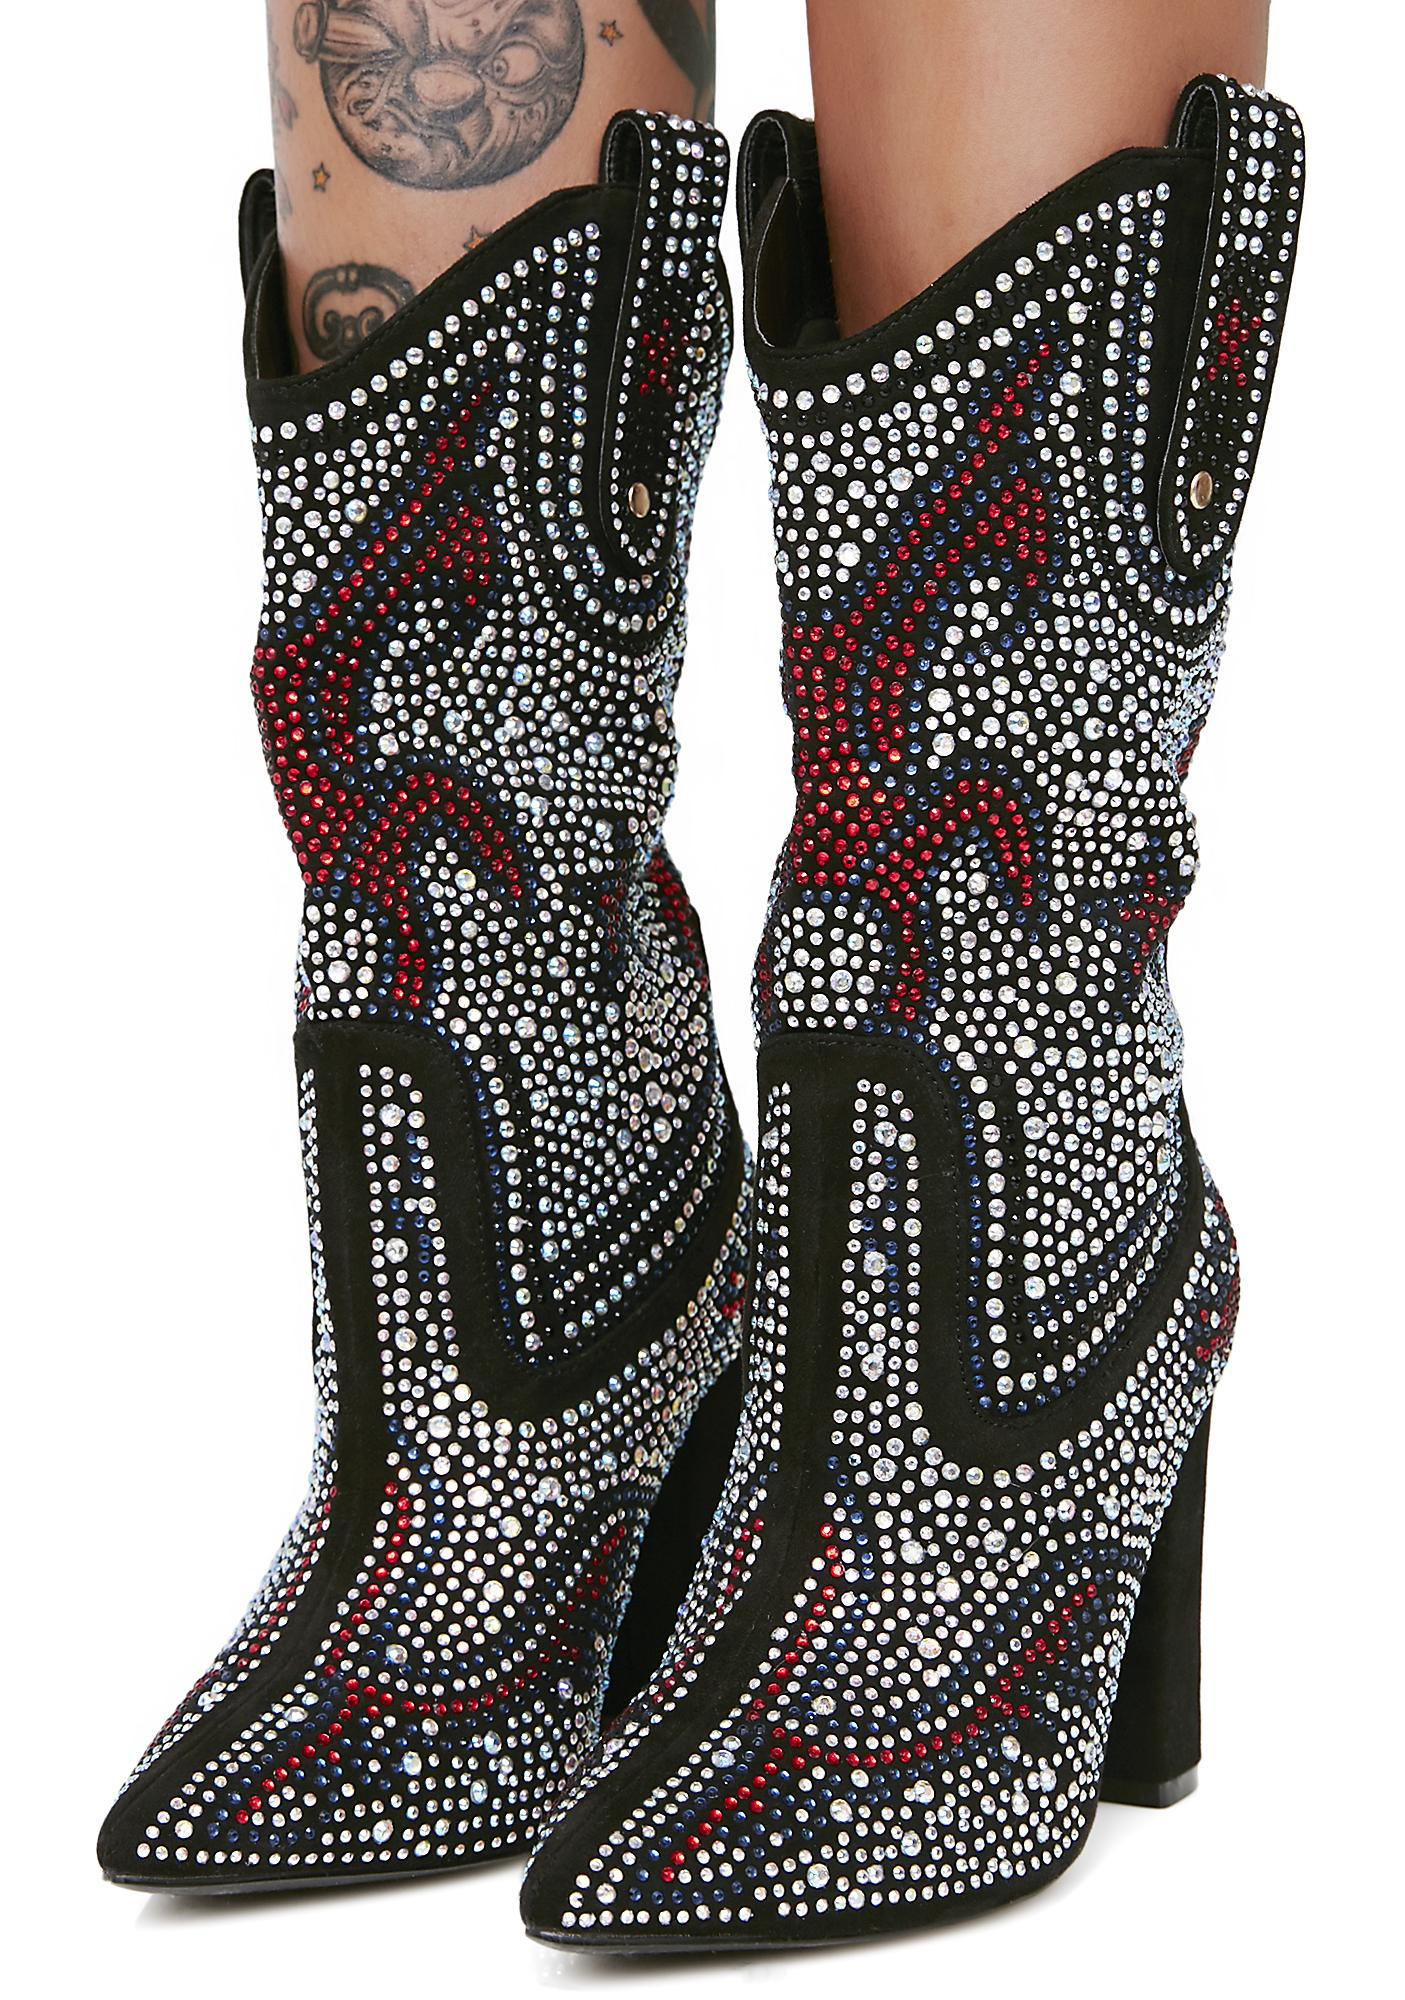 Sharpshootin' Sweetie Studded Cowboy Boots